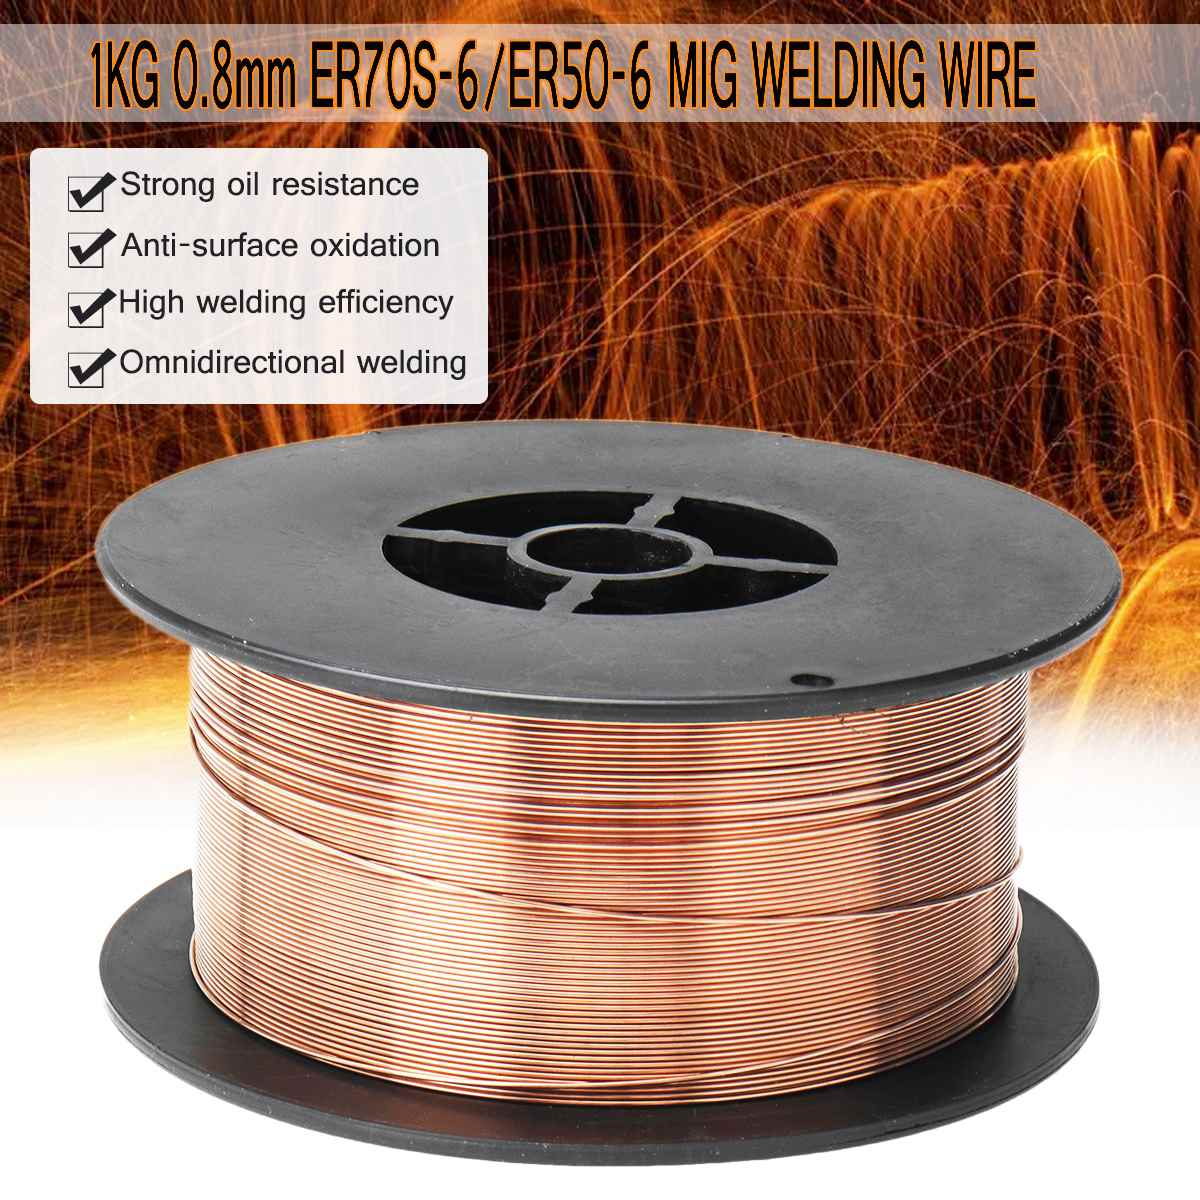 MIG Solid Welding Wire ER70S-6 / ER50-6 0.6/0.8/0.9/1.0/1.2mm Mild Steel Gas Shielded Welding Wire